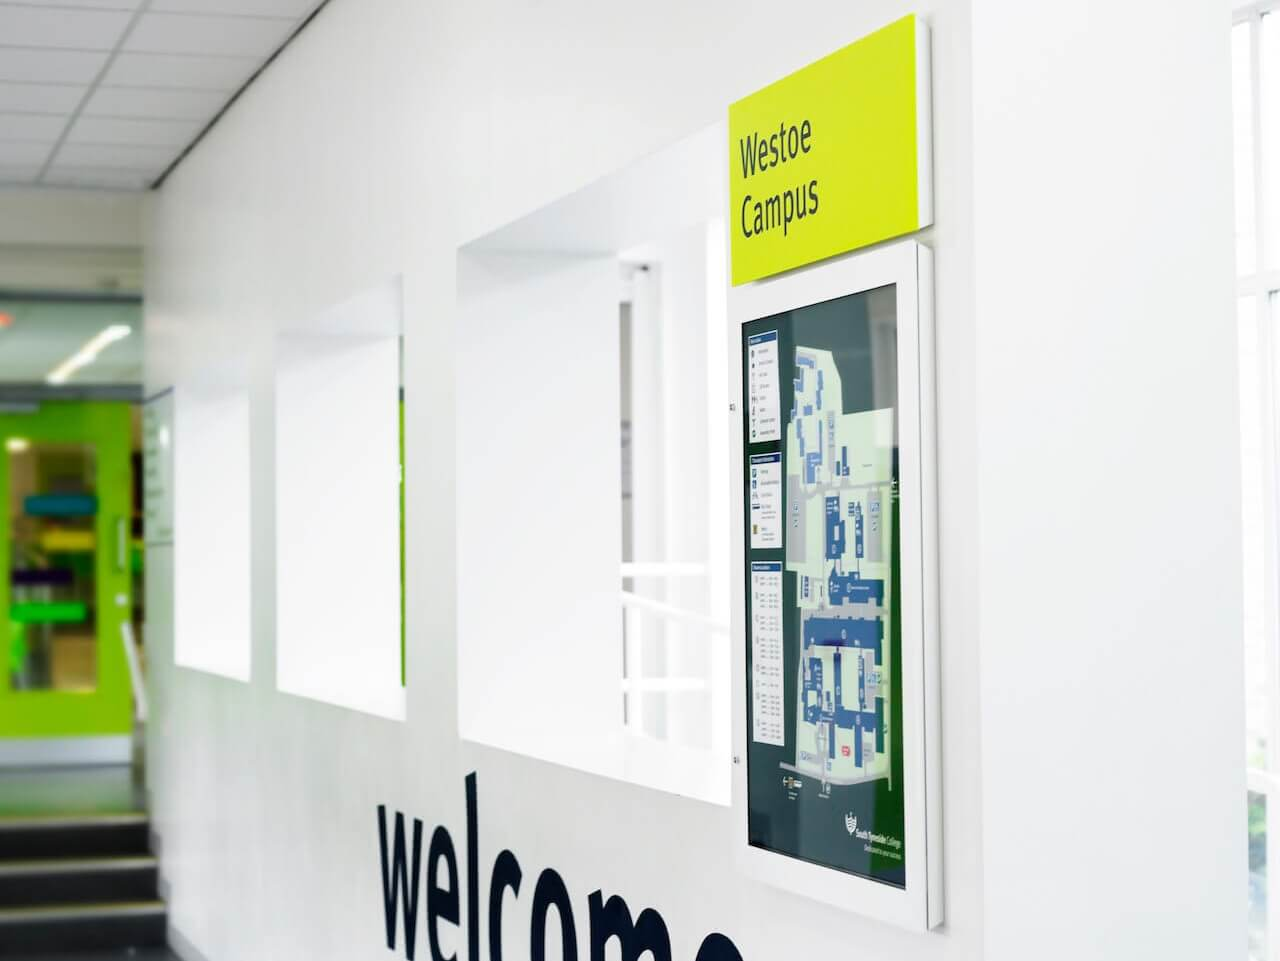 Wall mounted campus map as part of the wayfinding and signage strategy at South Tyneside College